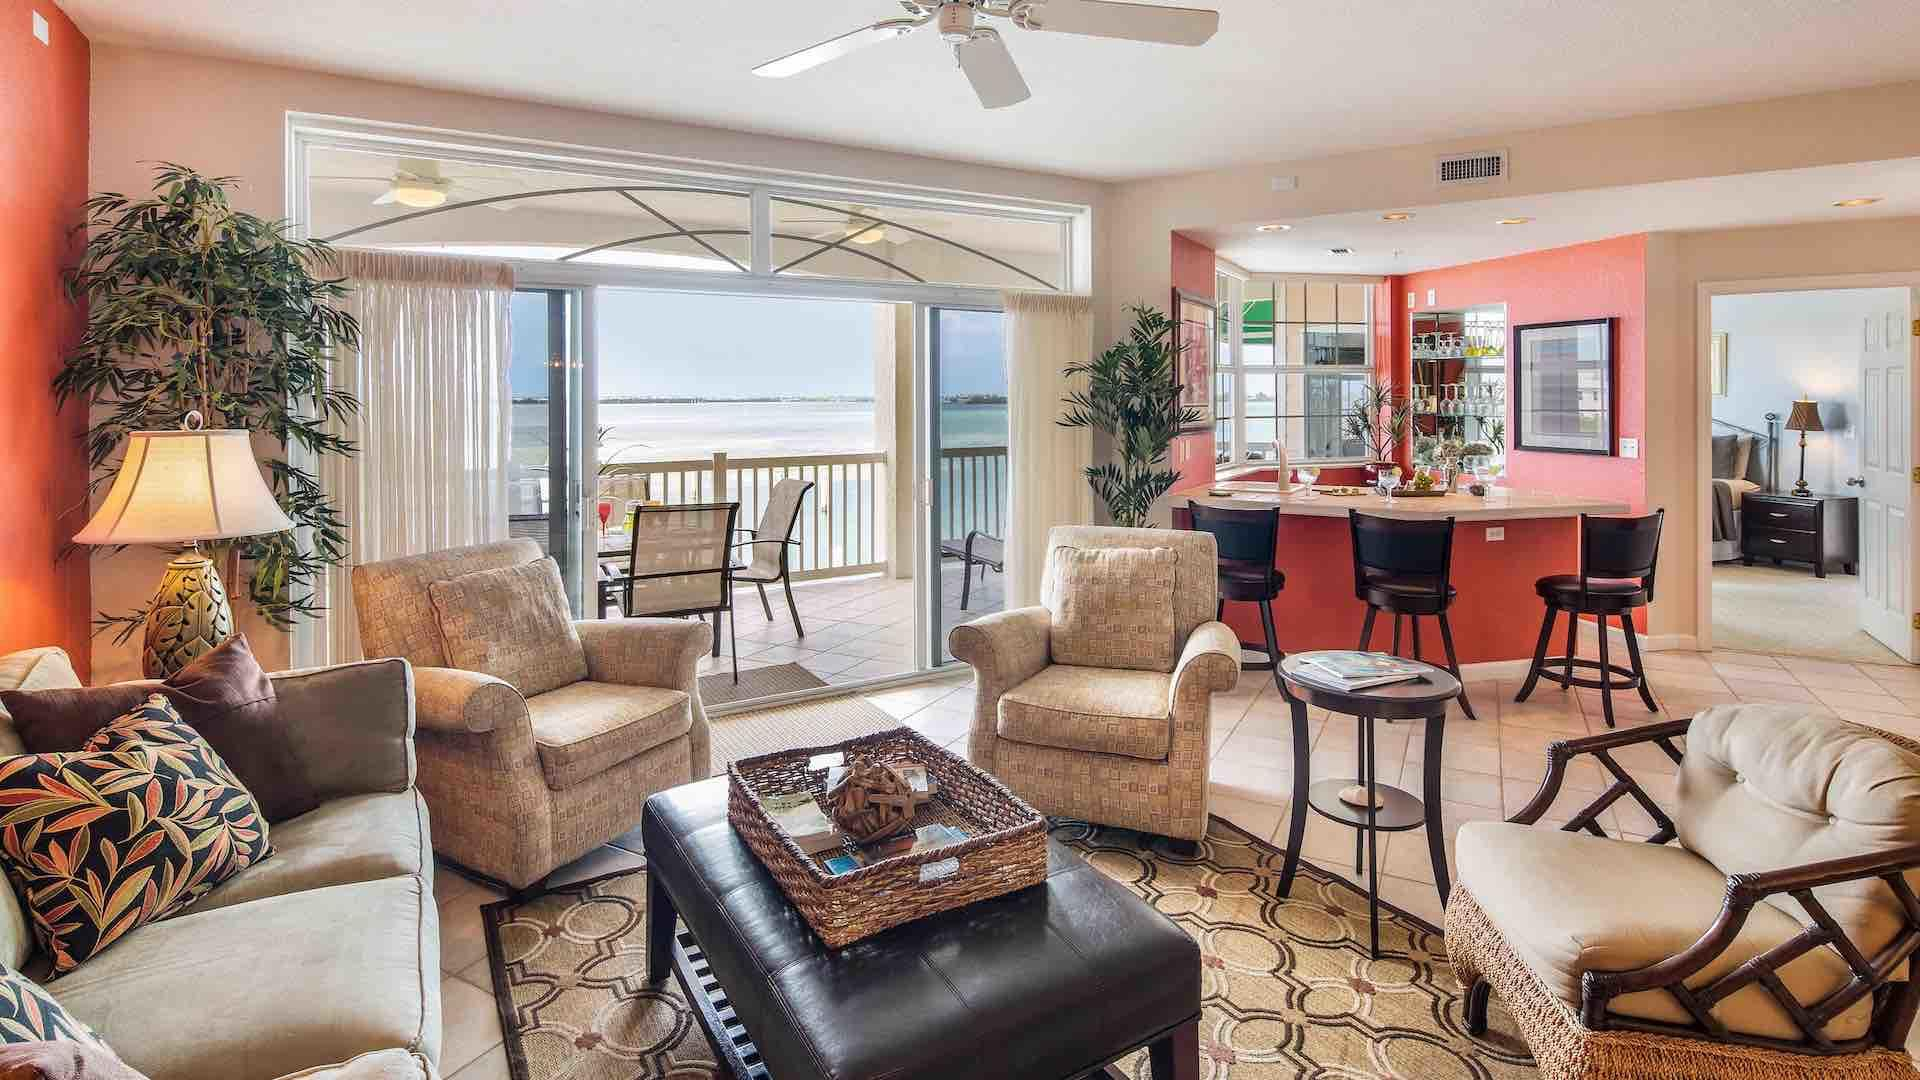 This condo is an end unit with commanding views over the Florida Bay...